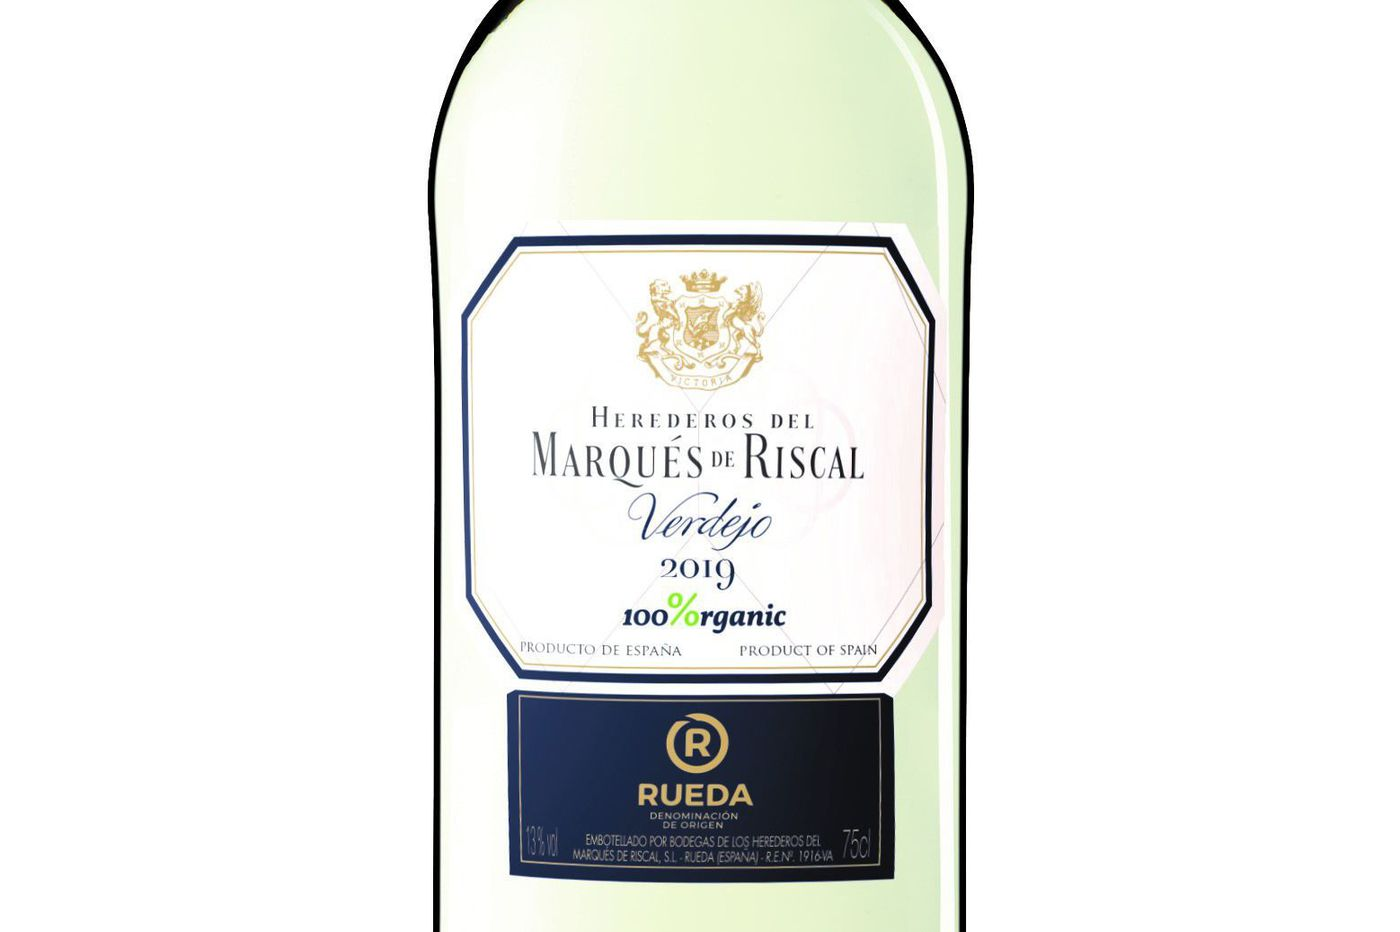 Verdejo is a Spanish white wine from the Rueda region that stands out